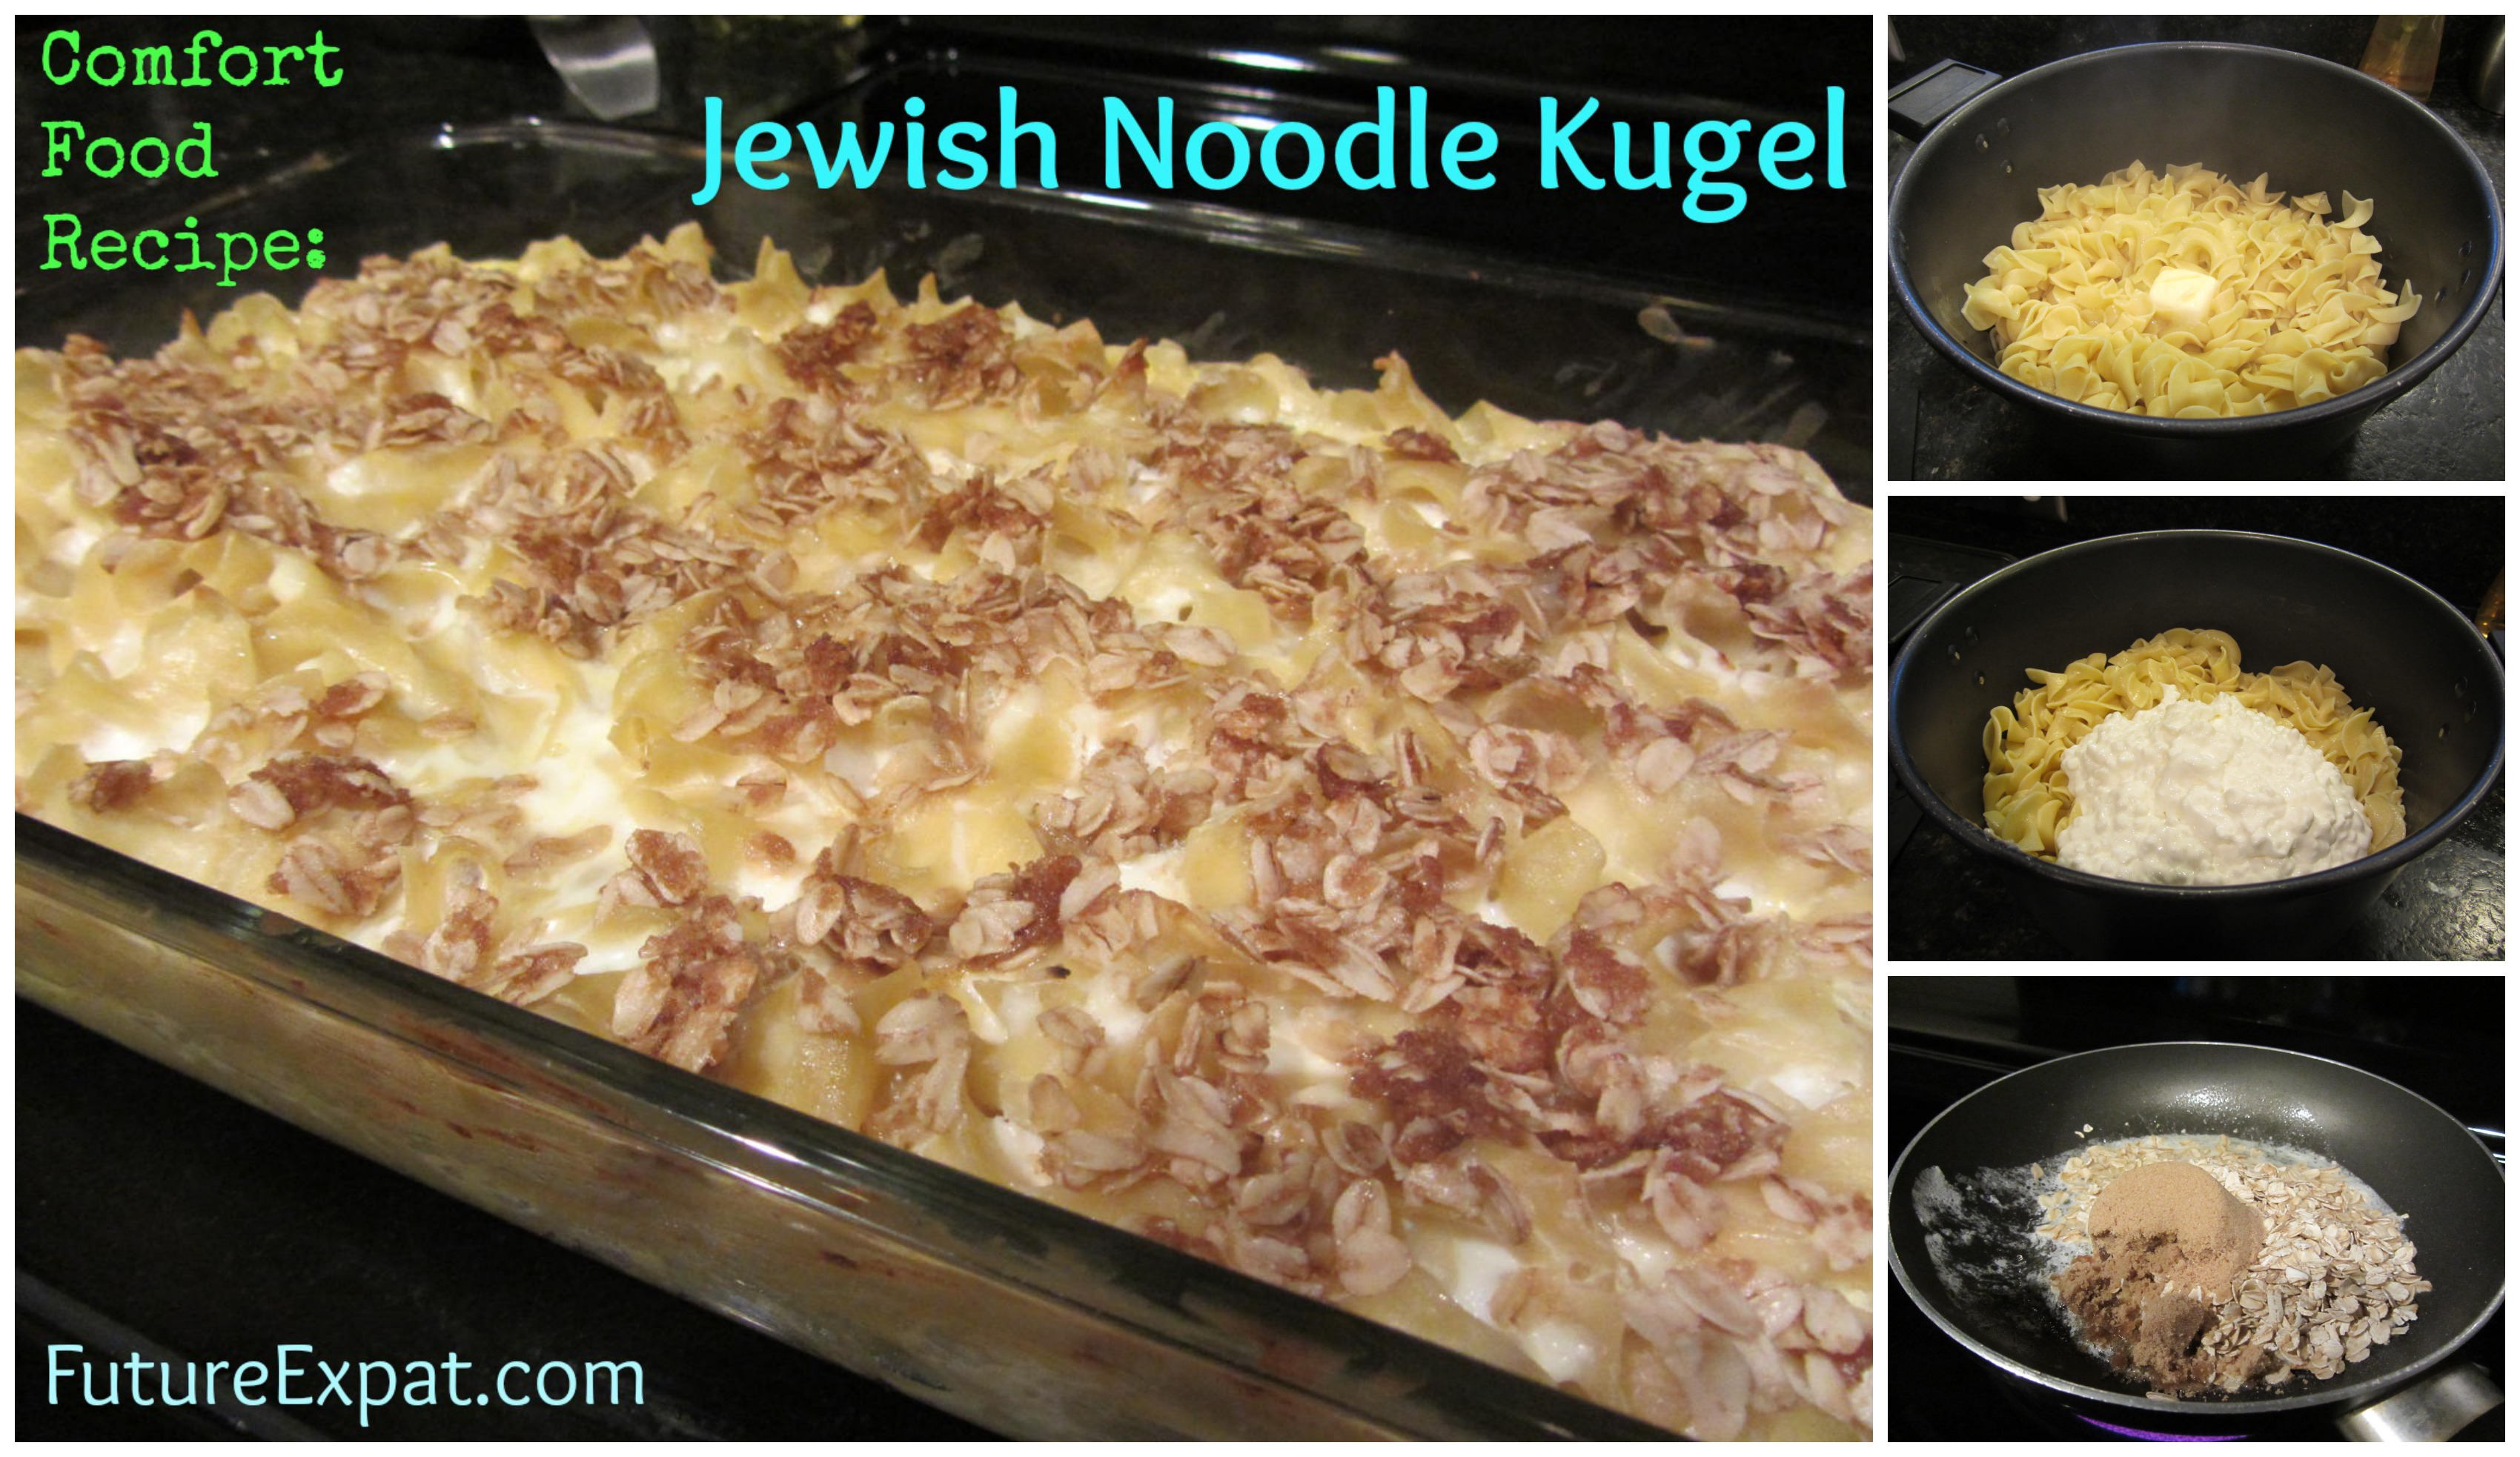 Comfort food jewish noodle kugel recipe future expat noodle kugel recipe forumfinder Gallery